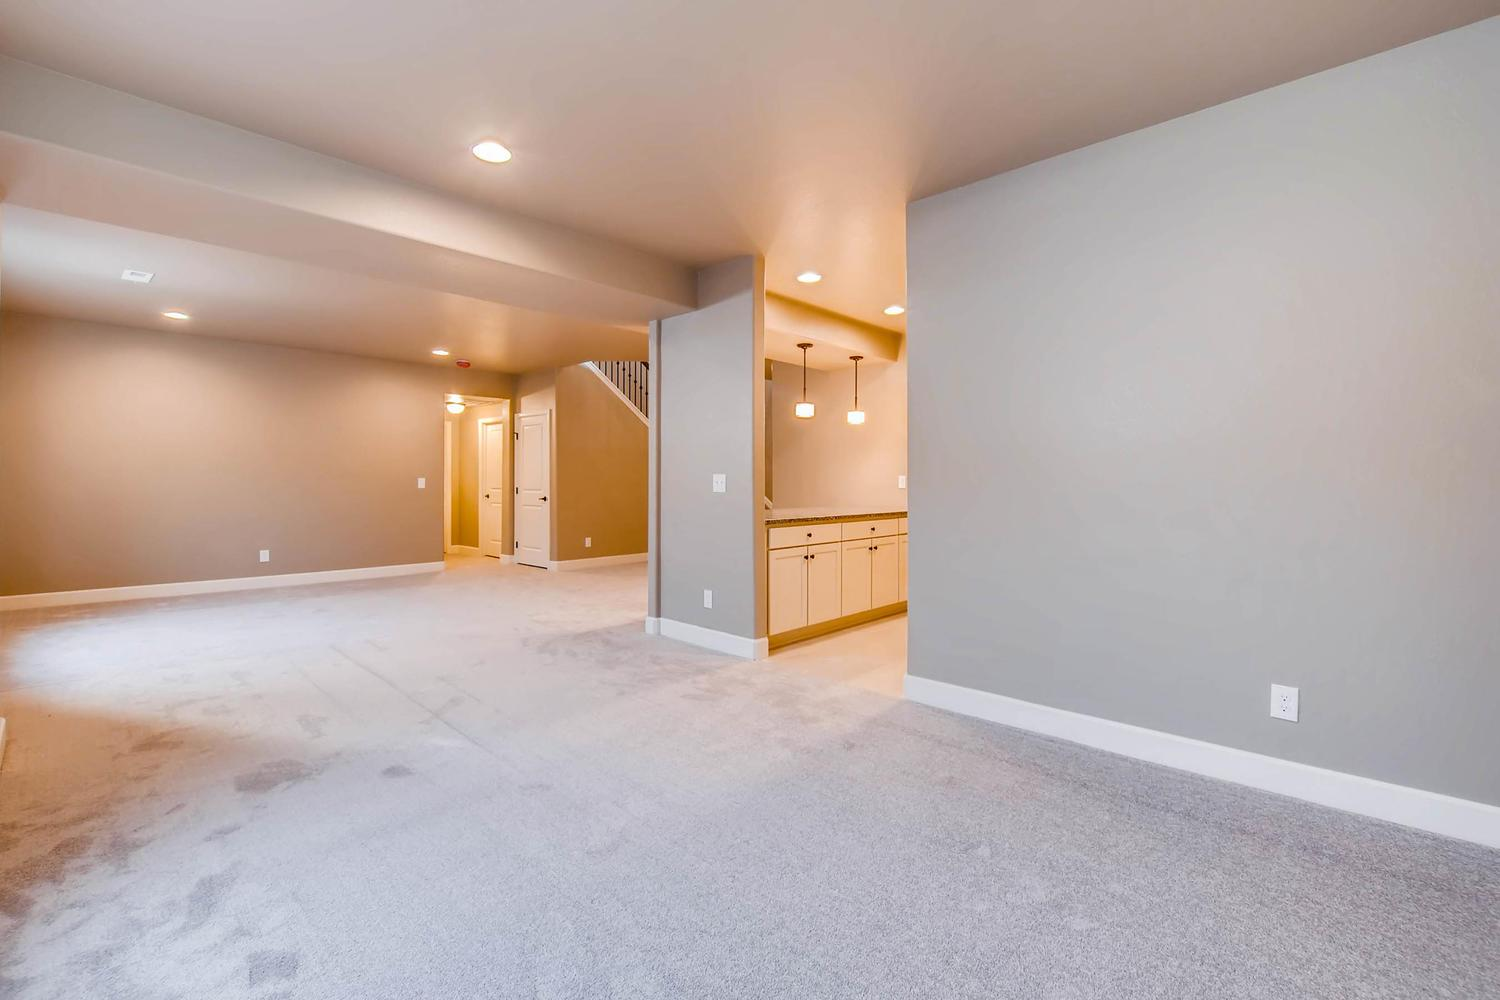 Single Family for Sale at The Glendale Ii 16695 Sanford Mead Mead, Colorado 80542 United States